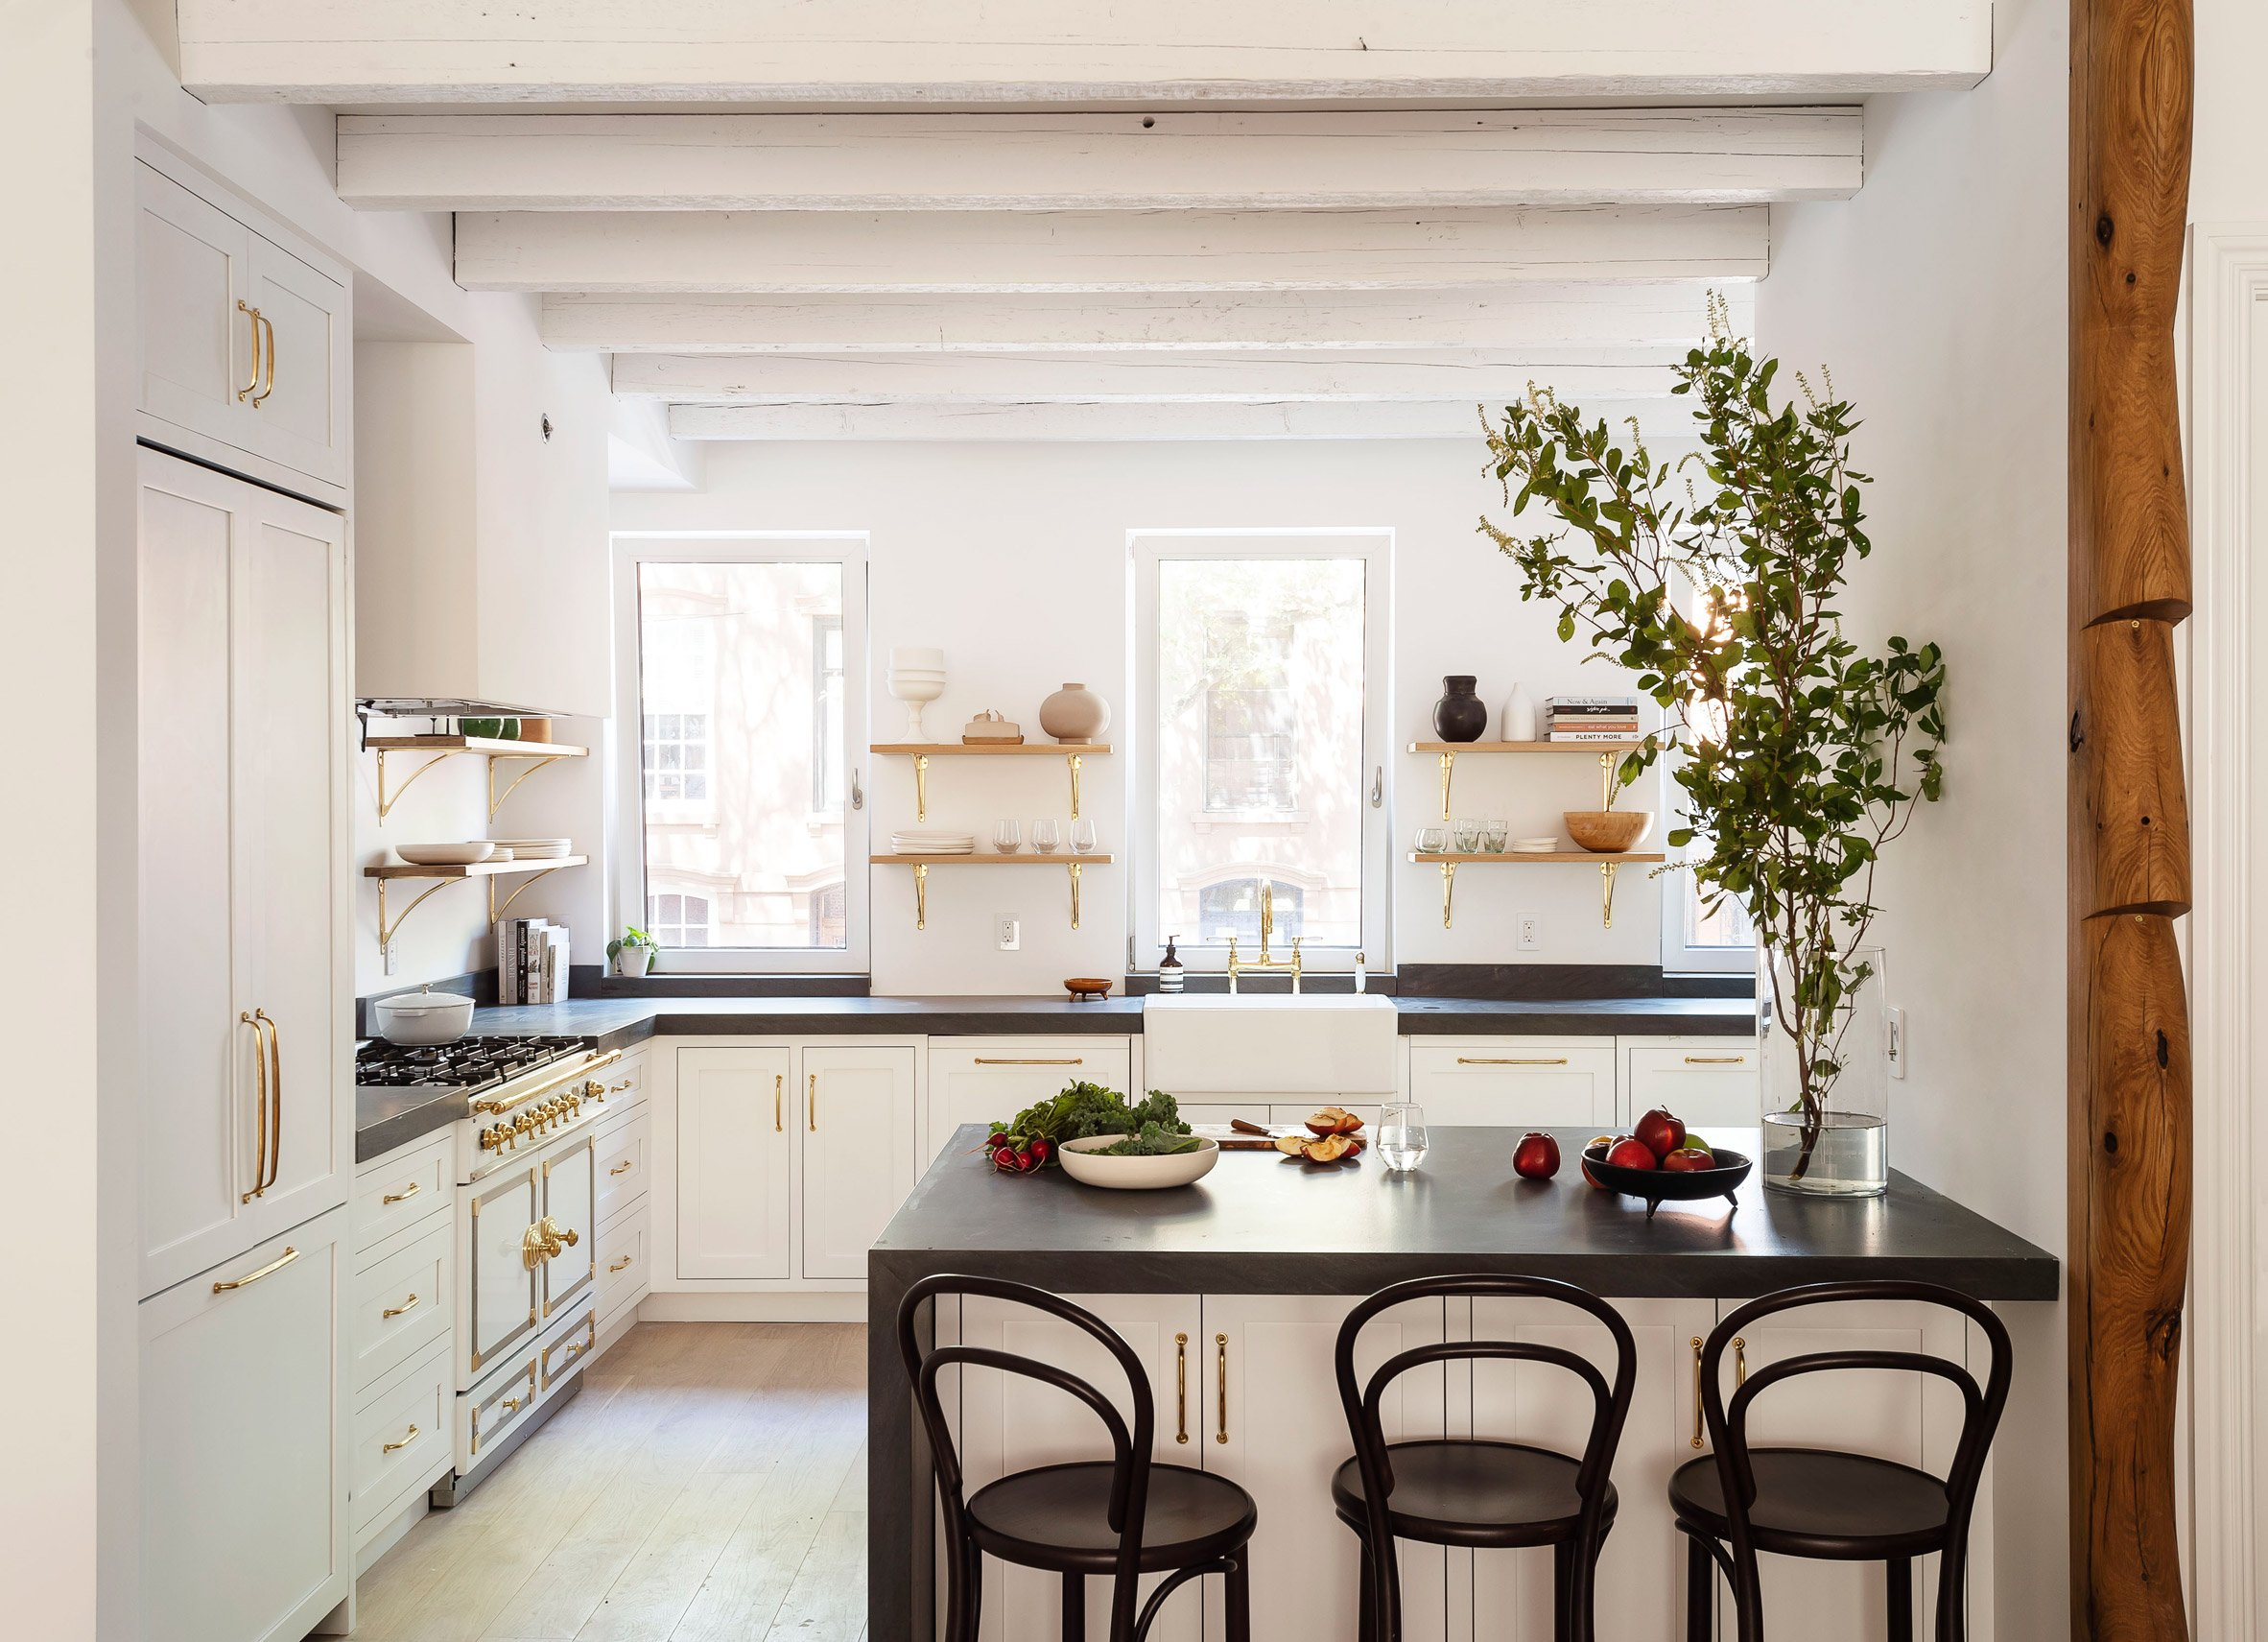 The Sackett Street townhouse's kitchen with exposed beams and hardware fixtures